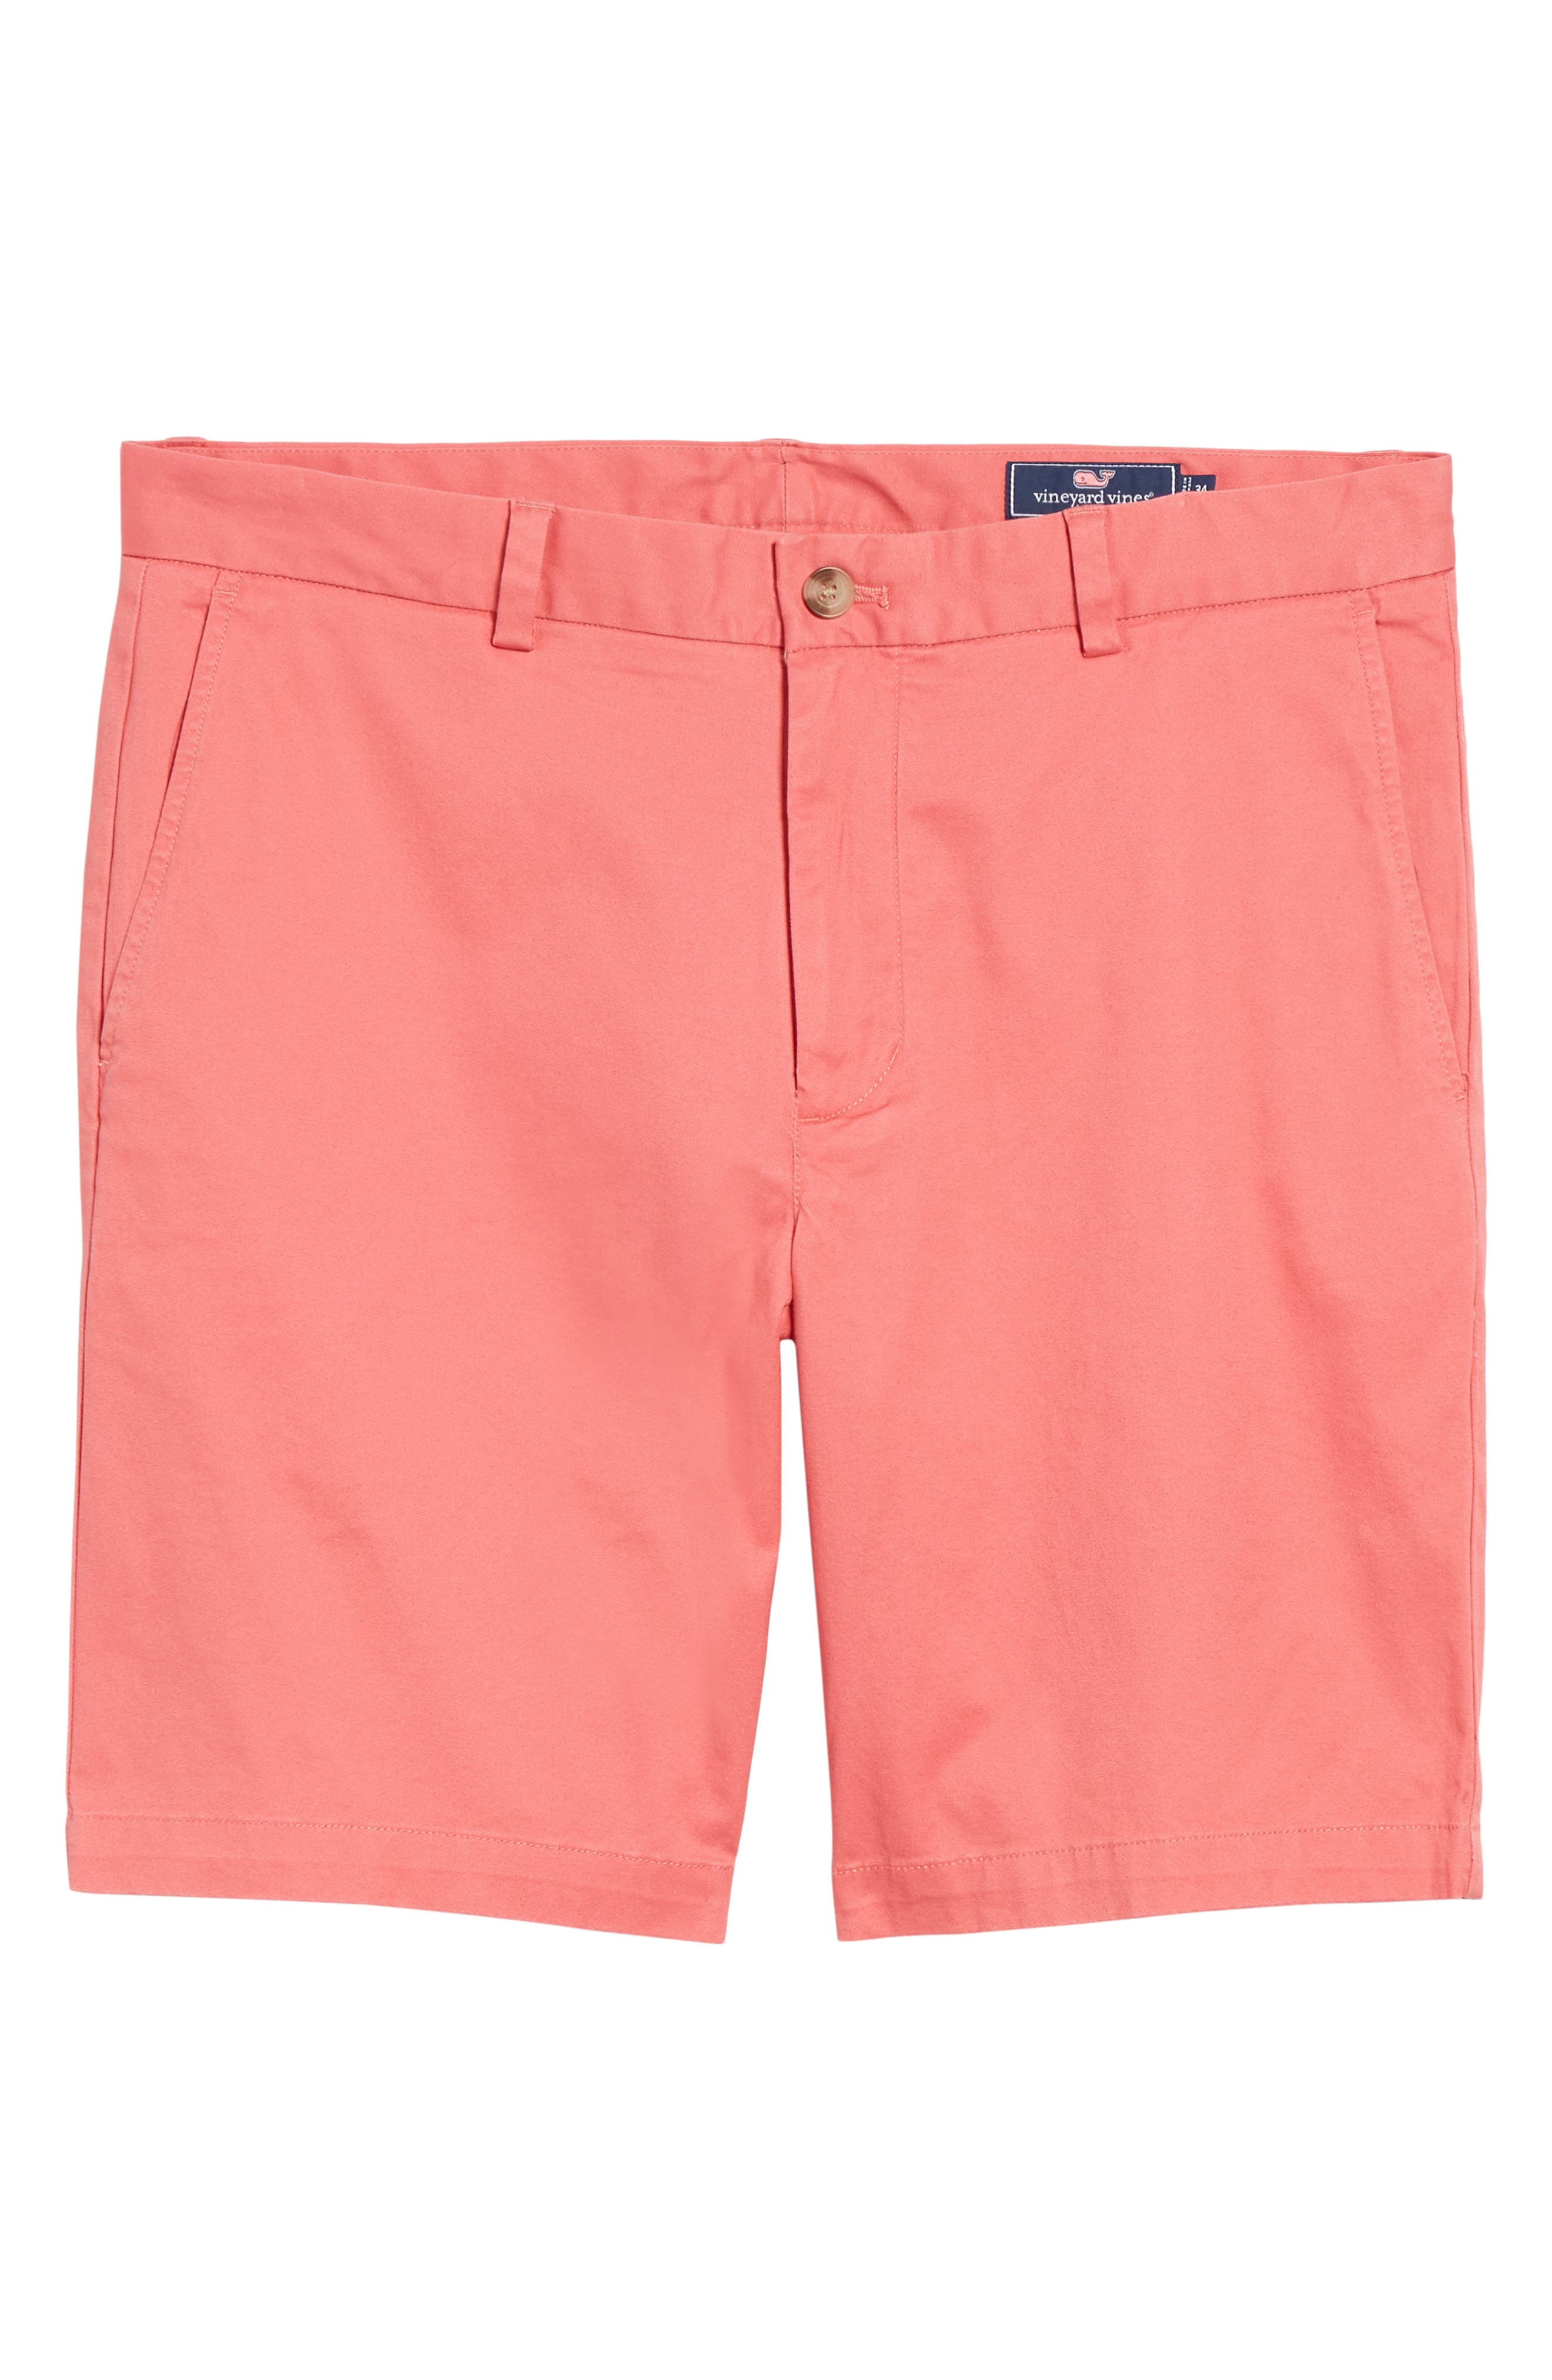 9 Inch Stretch Breaker Shorts,                             Alternate thumbnail 6, color,                             LOBSTER REEF